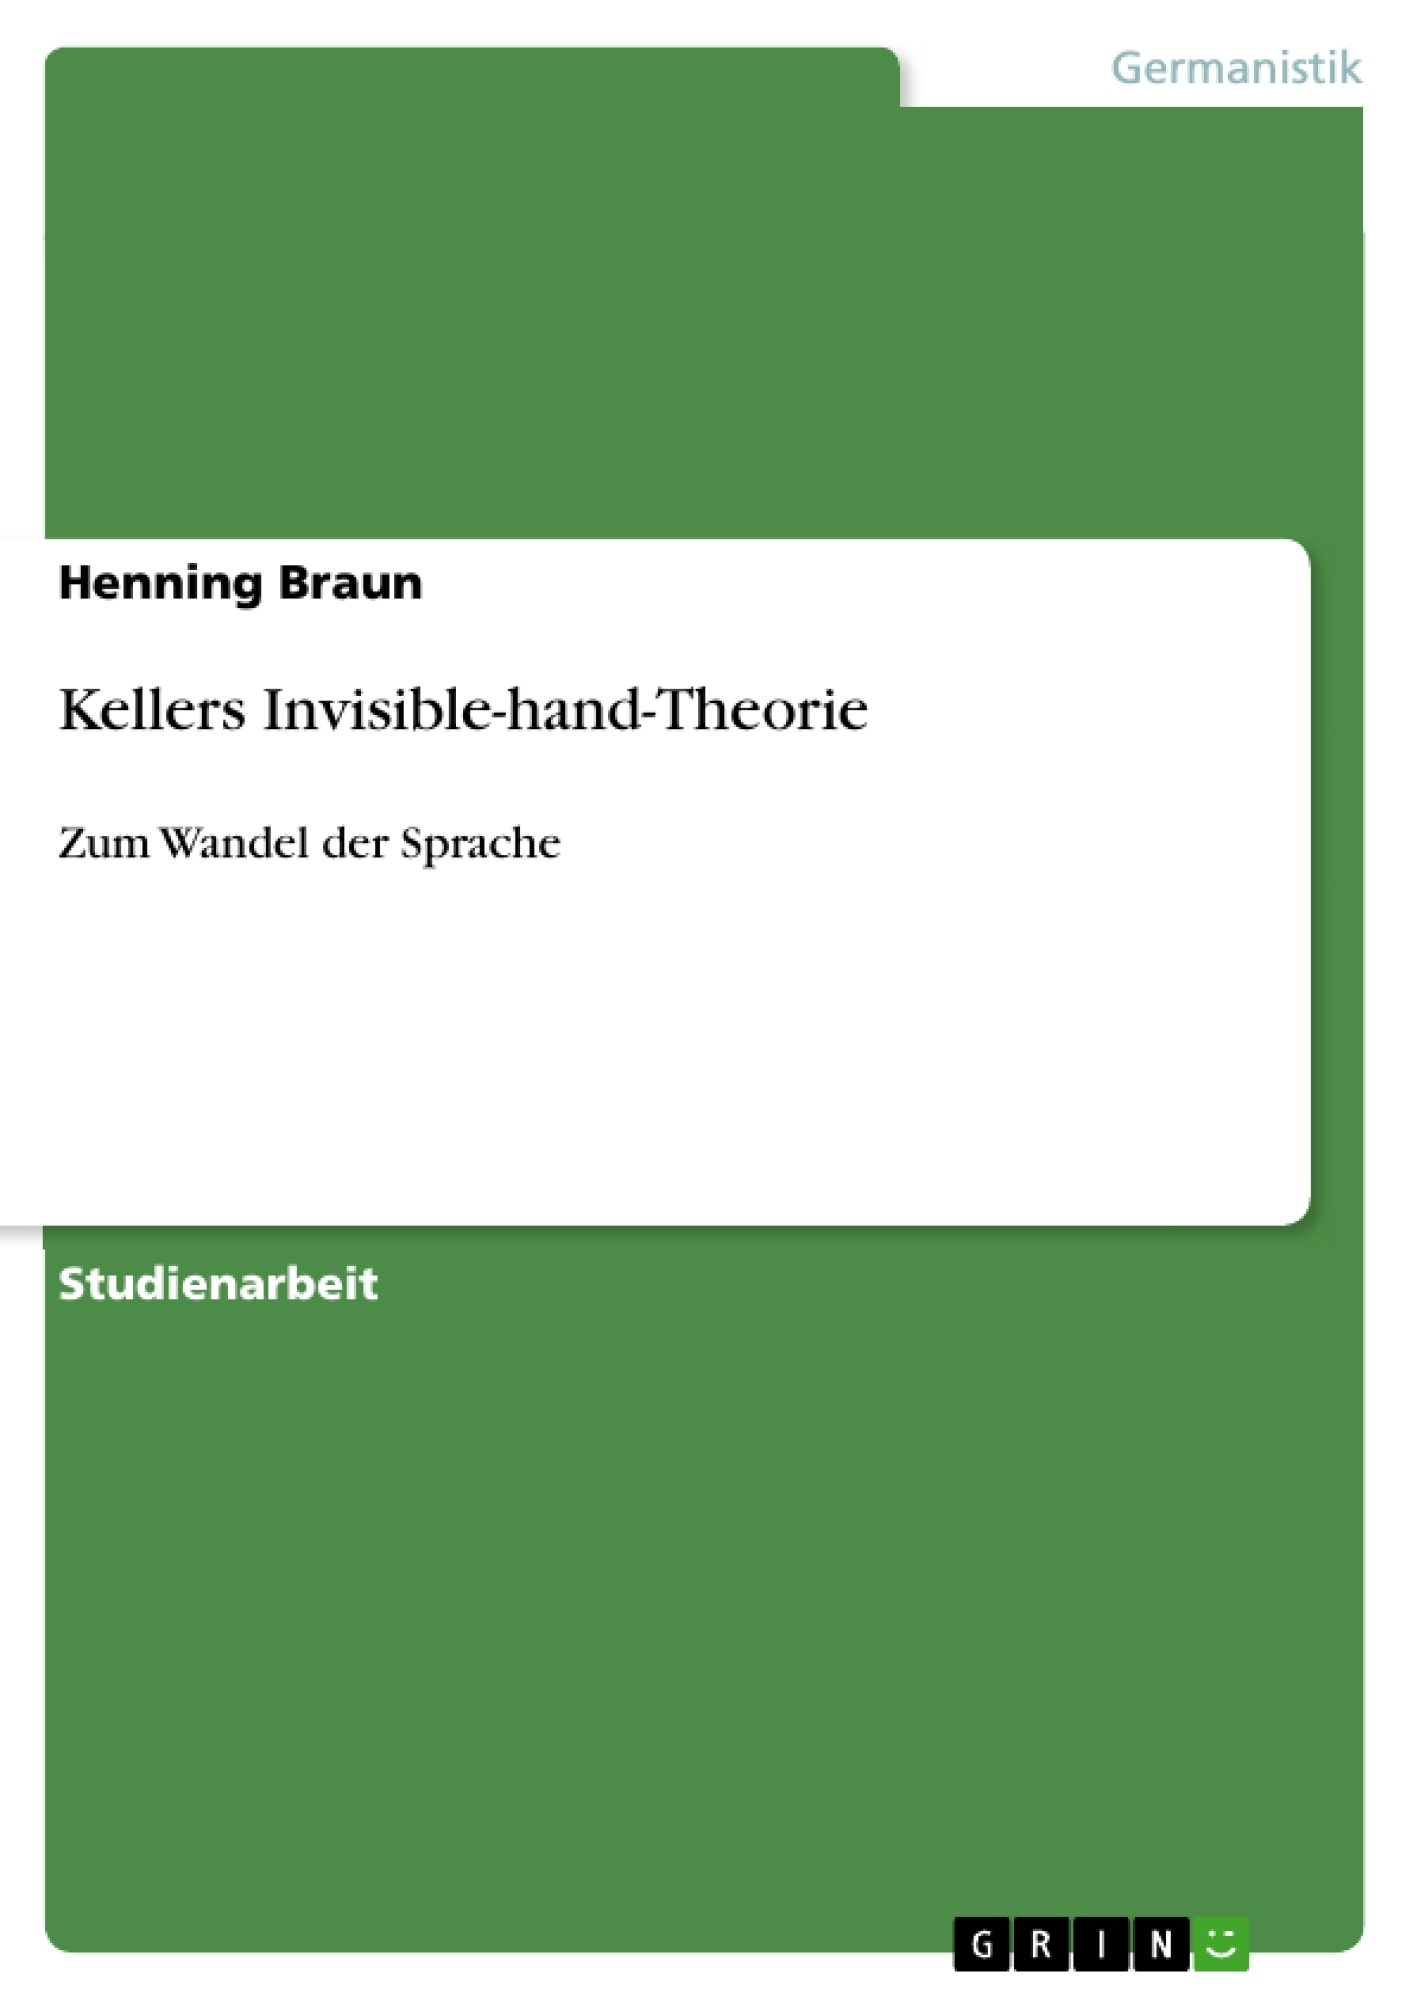 Titel: Kellers Invisible-hand-Theorie